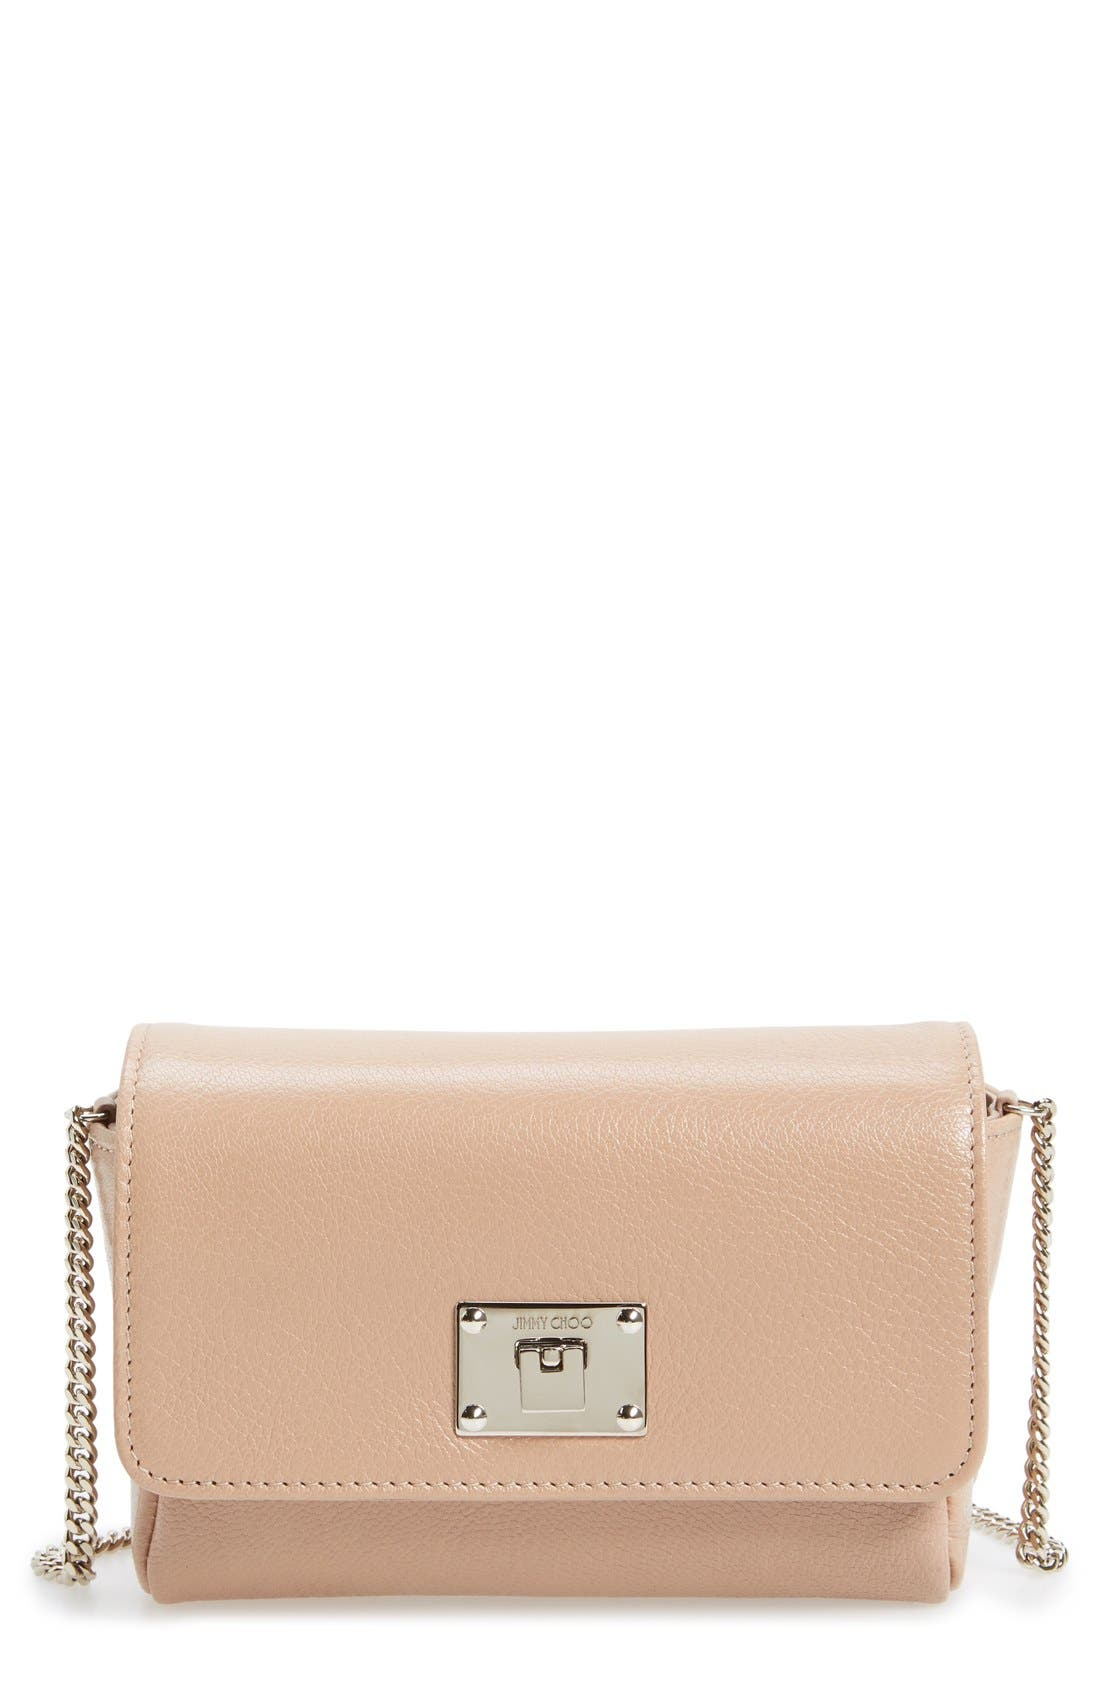 Jimmy Choo 'Ruby' Grainy Leather Clutch